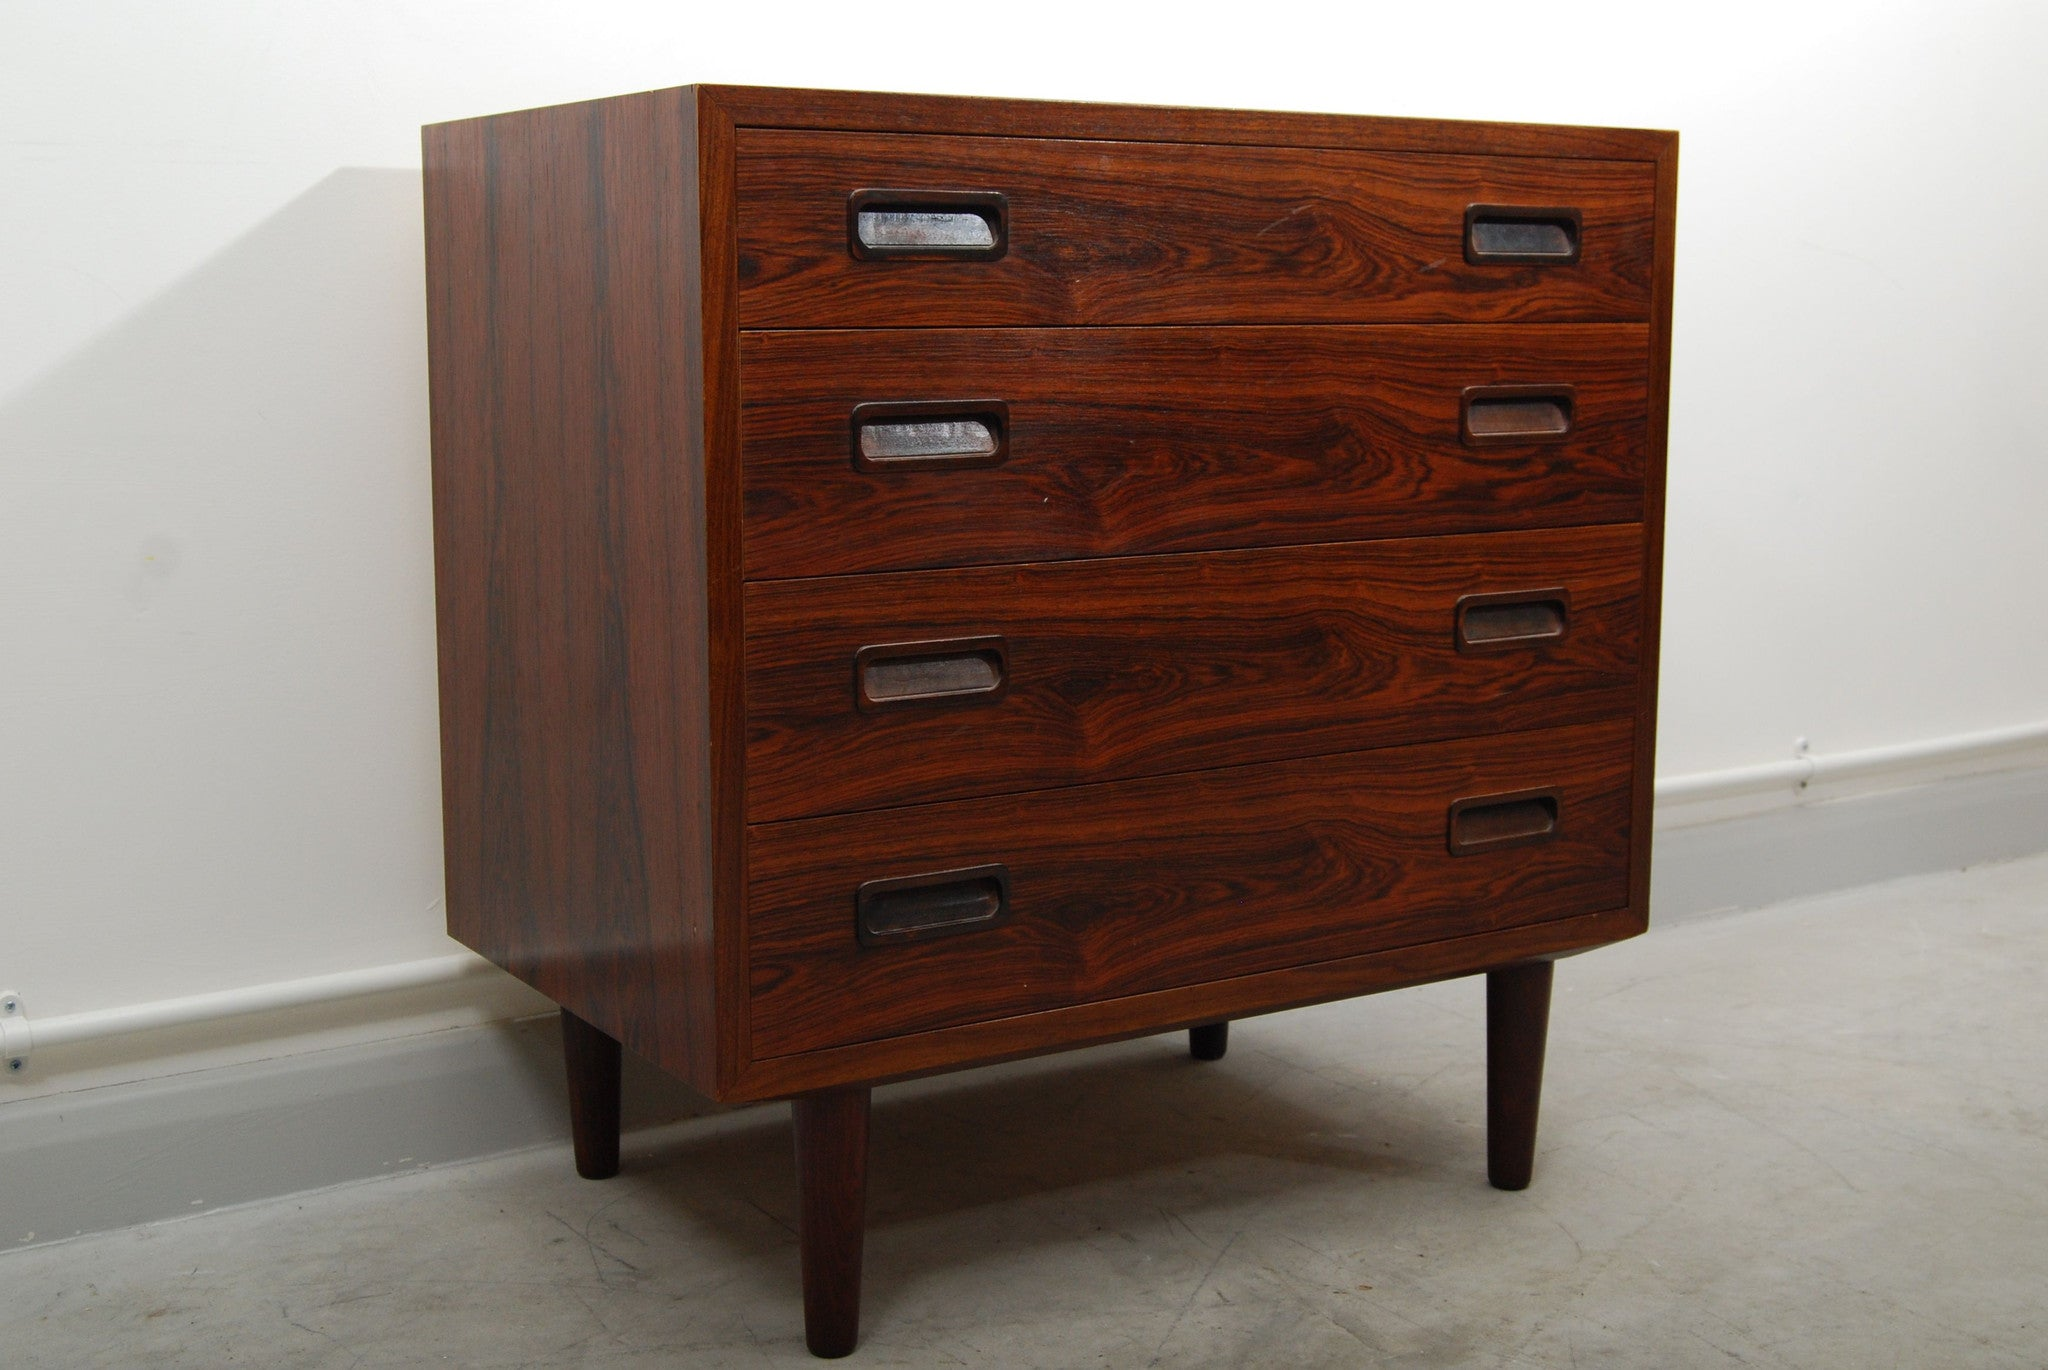 Short rosewood chest by Poul Hundevad